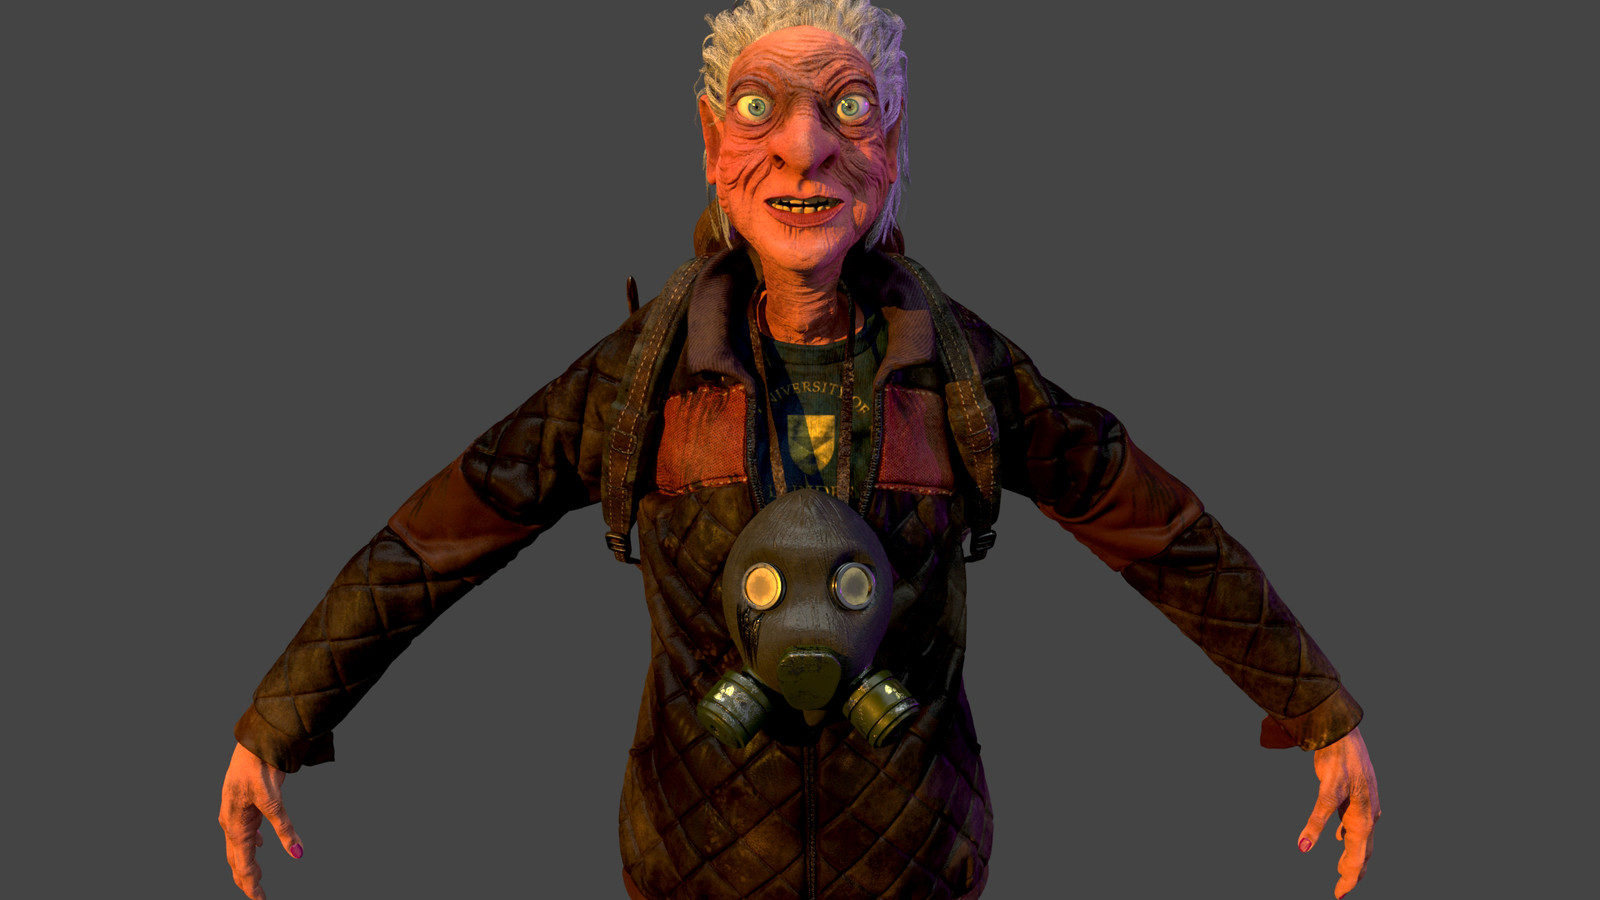 The lady has 47 4k resolution texture maps, I used displacement maps for her skin and leather materials.